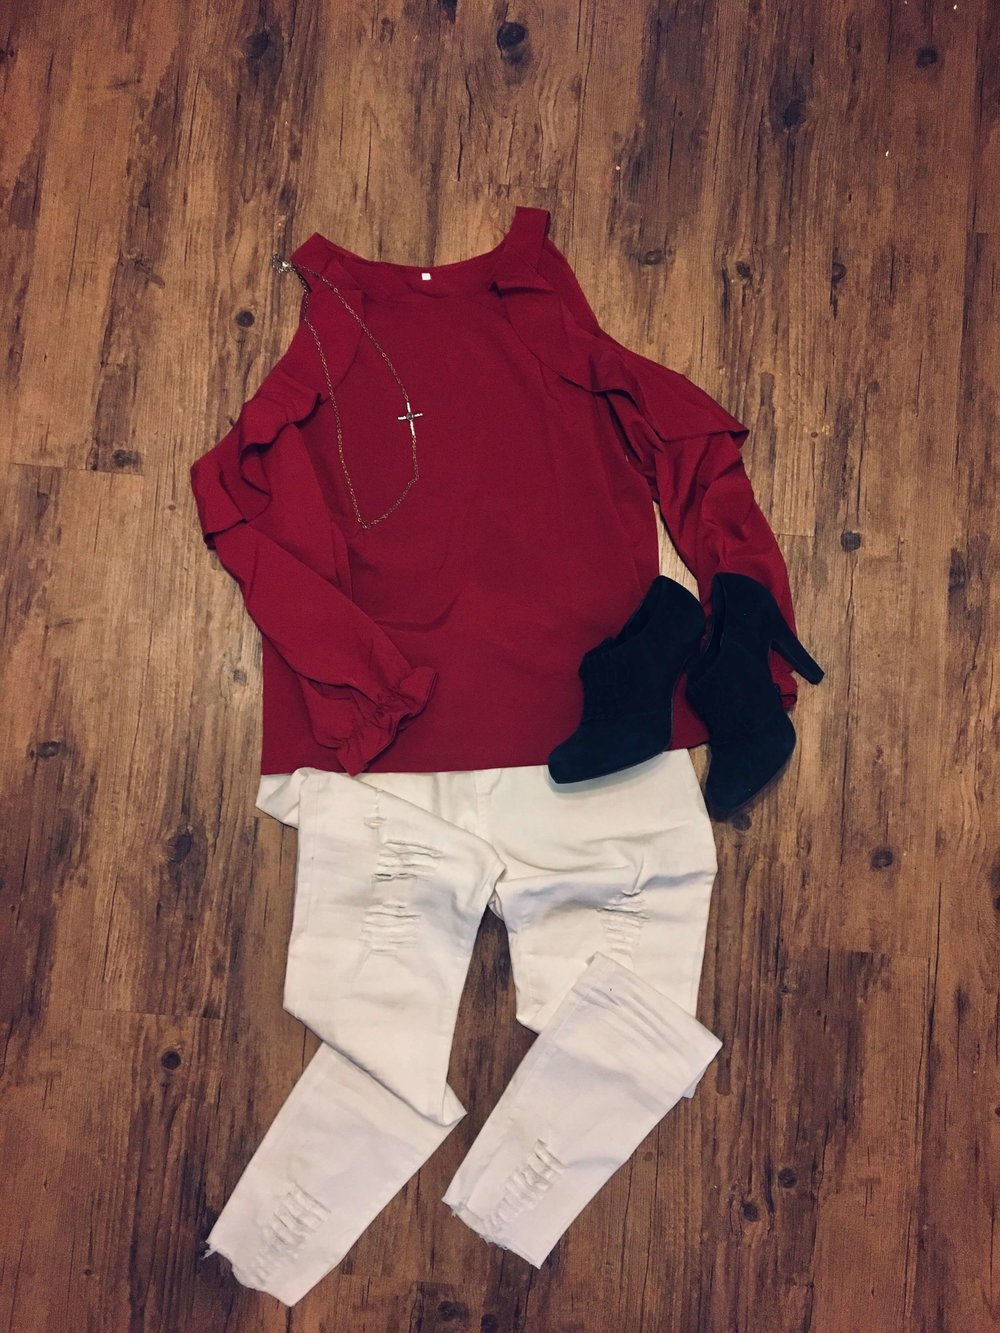 Wine colored cold shoulder top and distressed jeans from Fashom